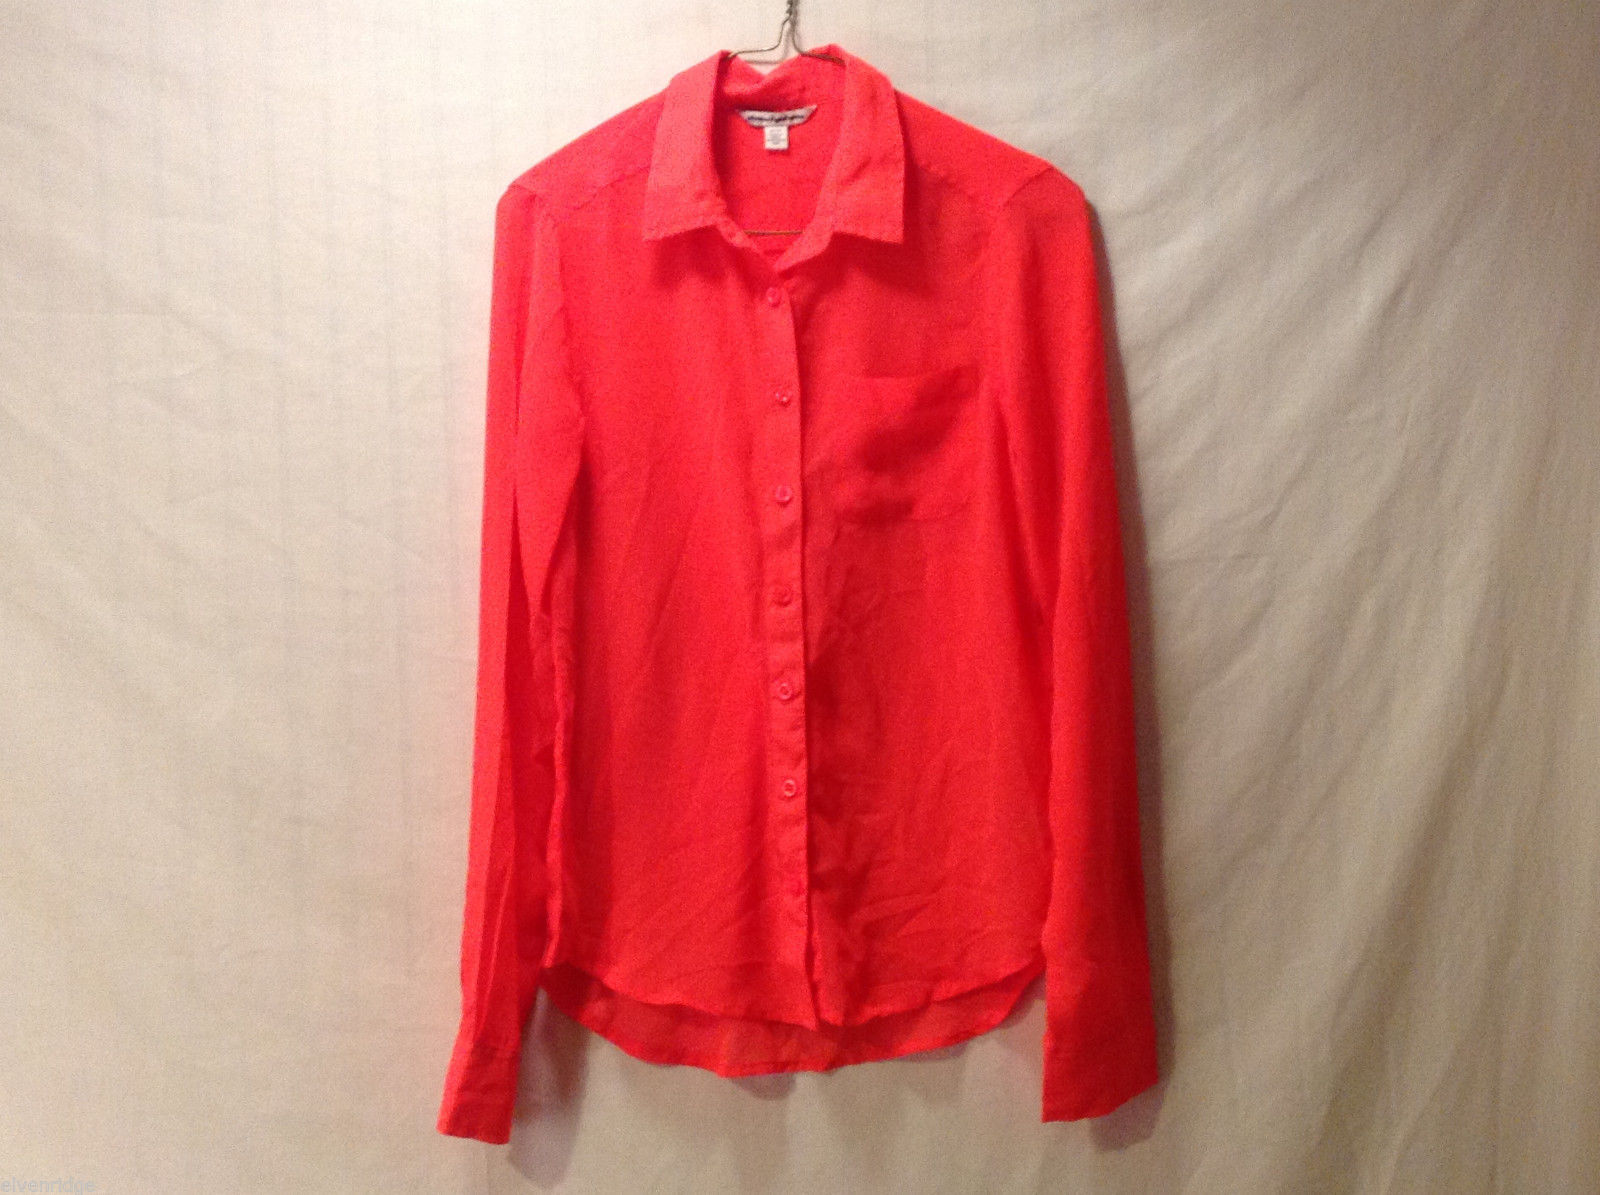 American Eagle Outfitters Women's Size XS Shirt Button-Down Bright Coral Red AEO